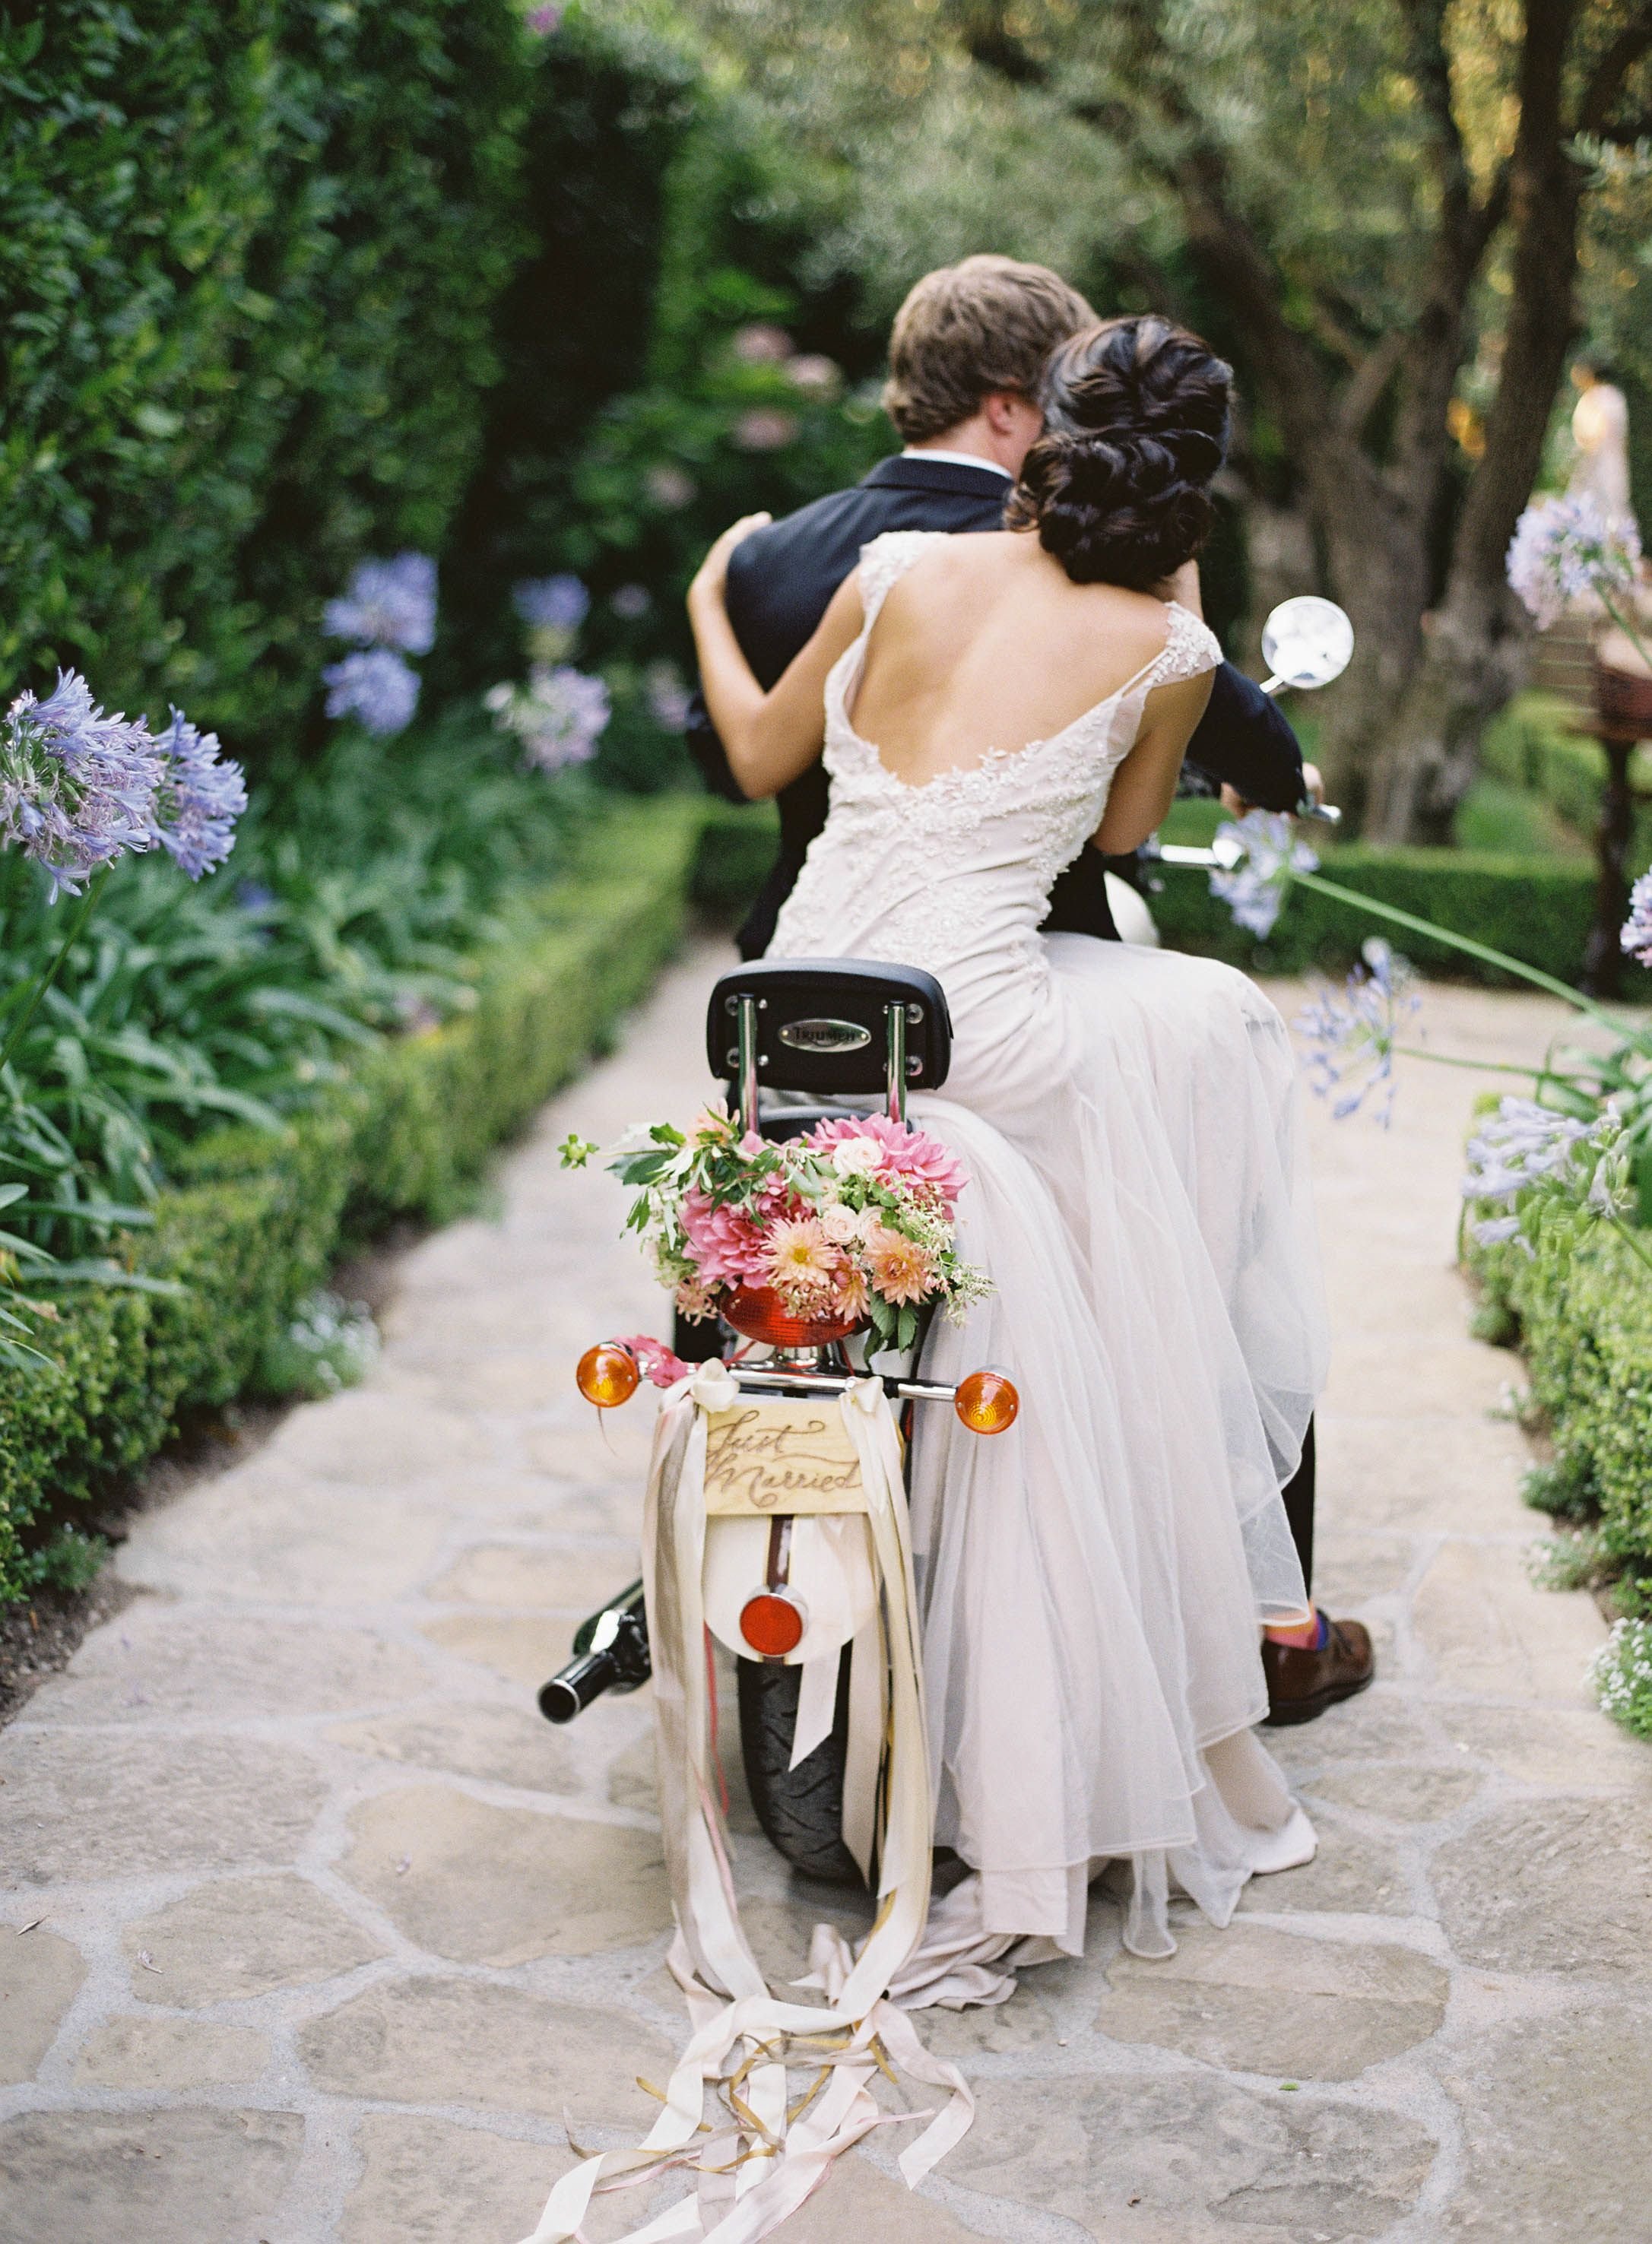 53 Genius Ways To Save Money On Your Wedding